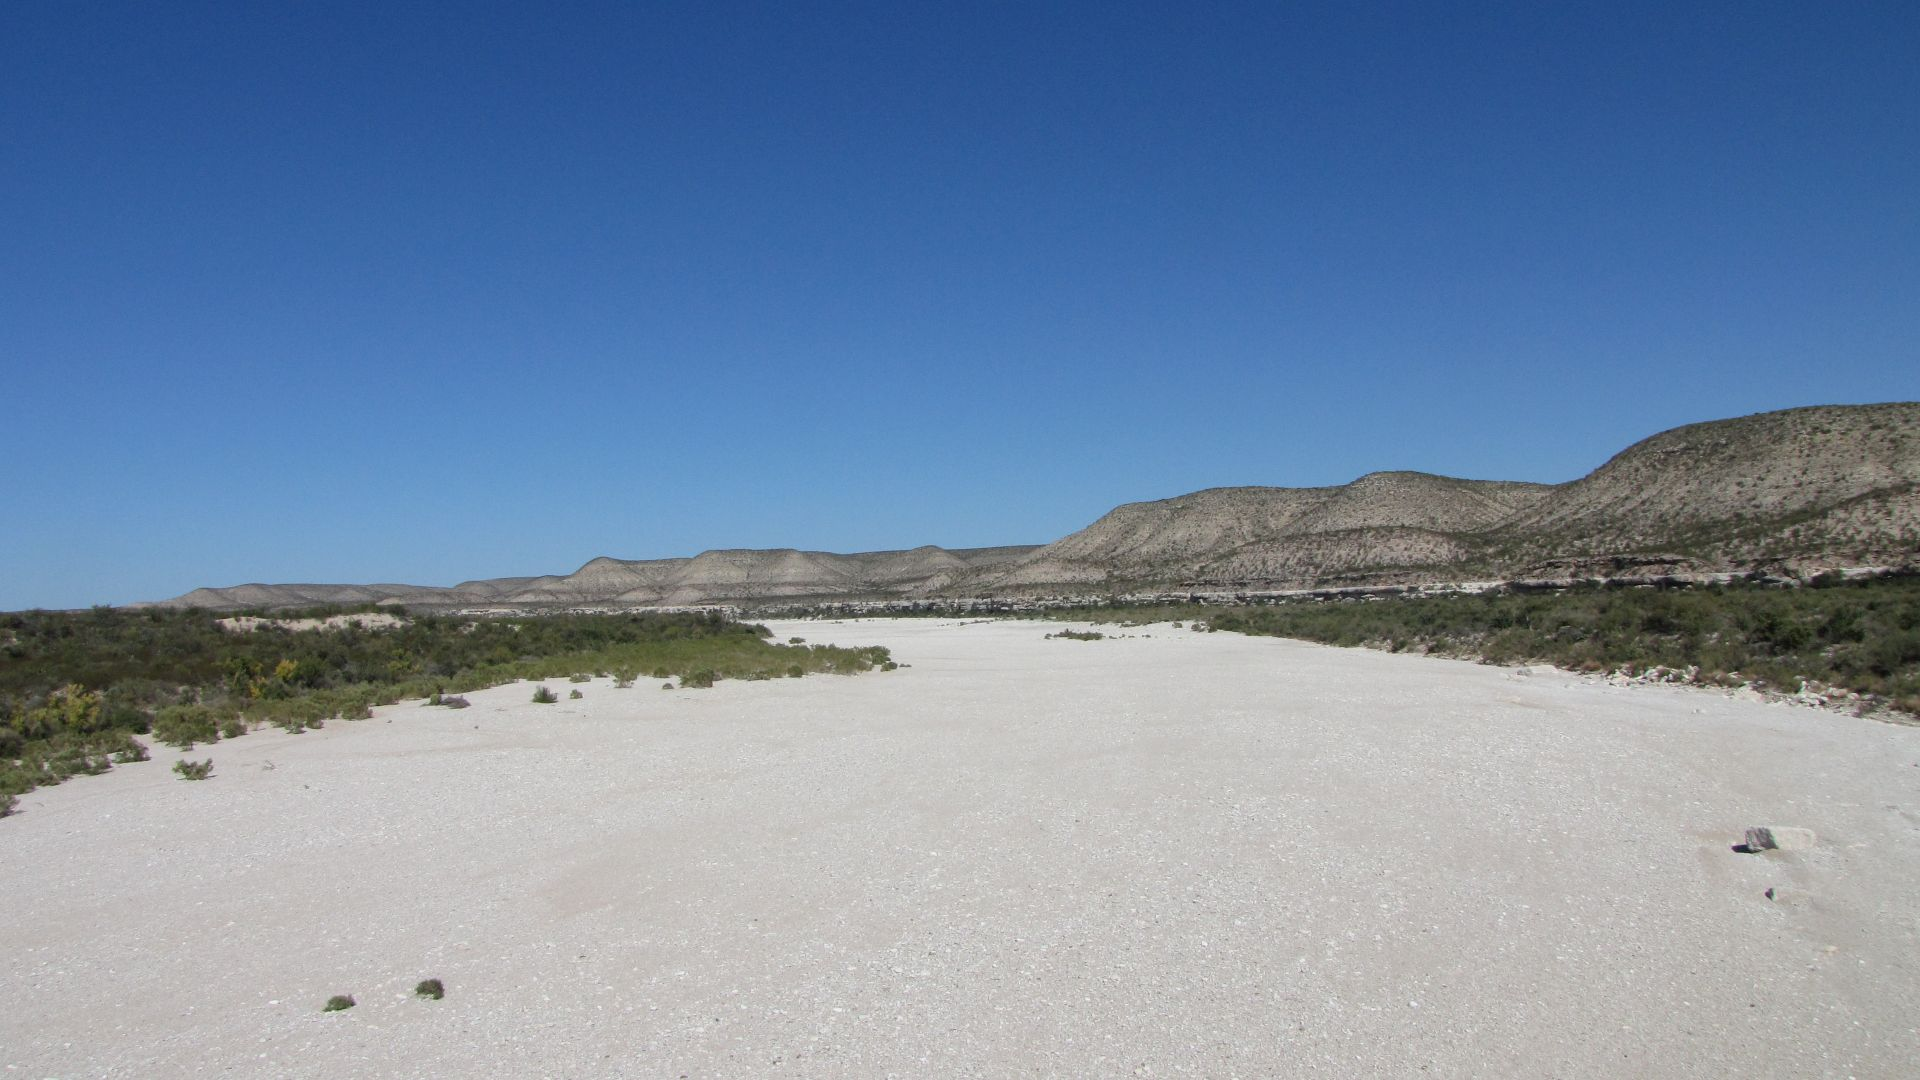 Nr Langtry, TX, USA - this is a dried-up (200 ft wide!) riverbed!